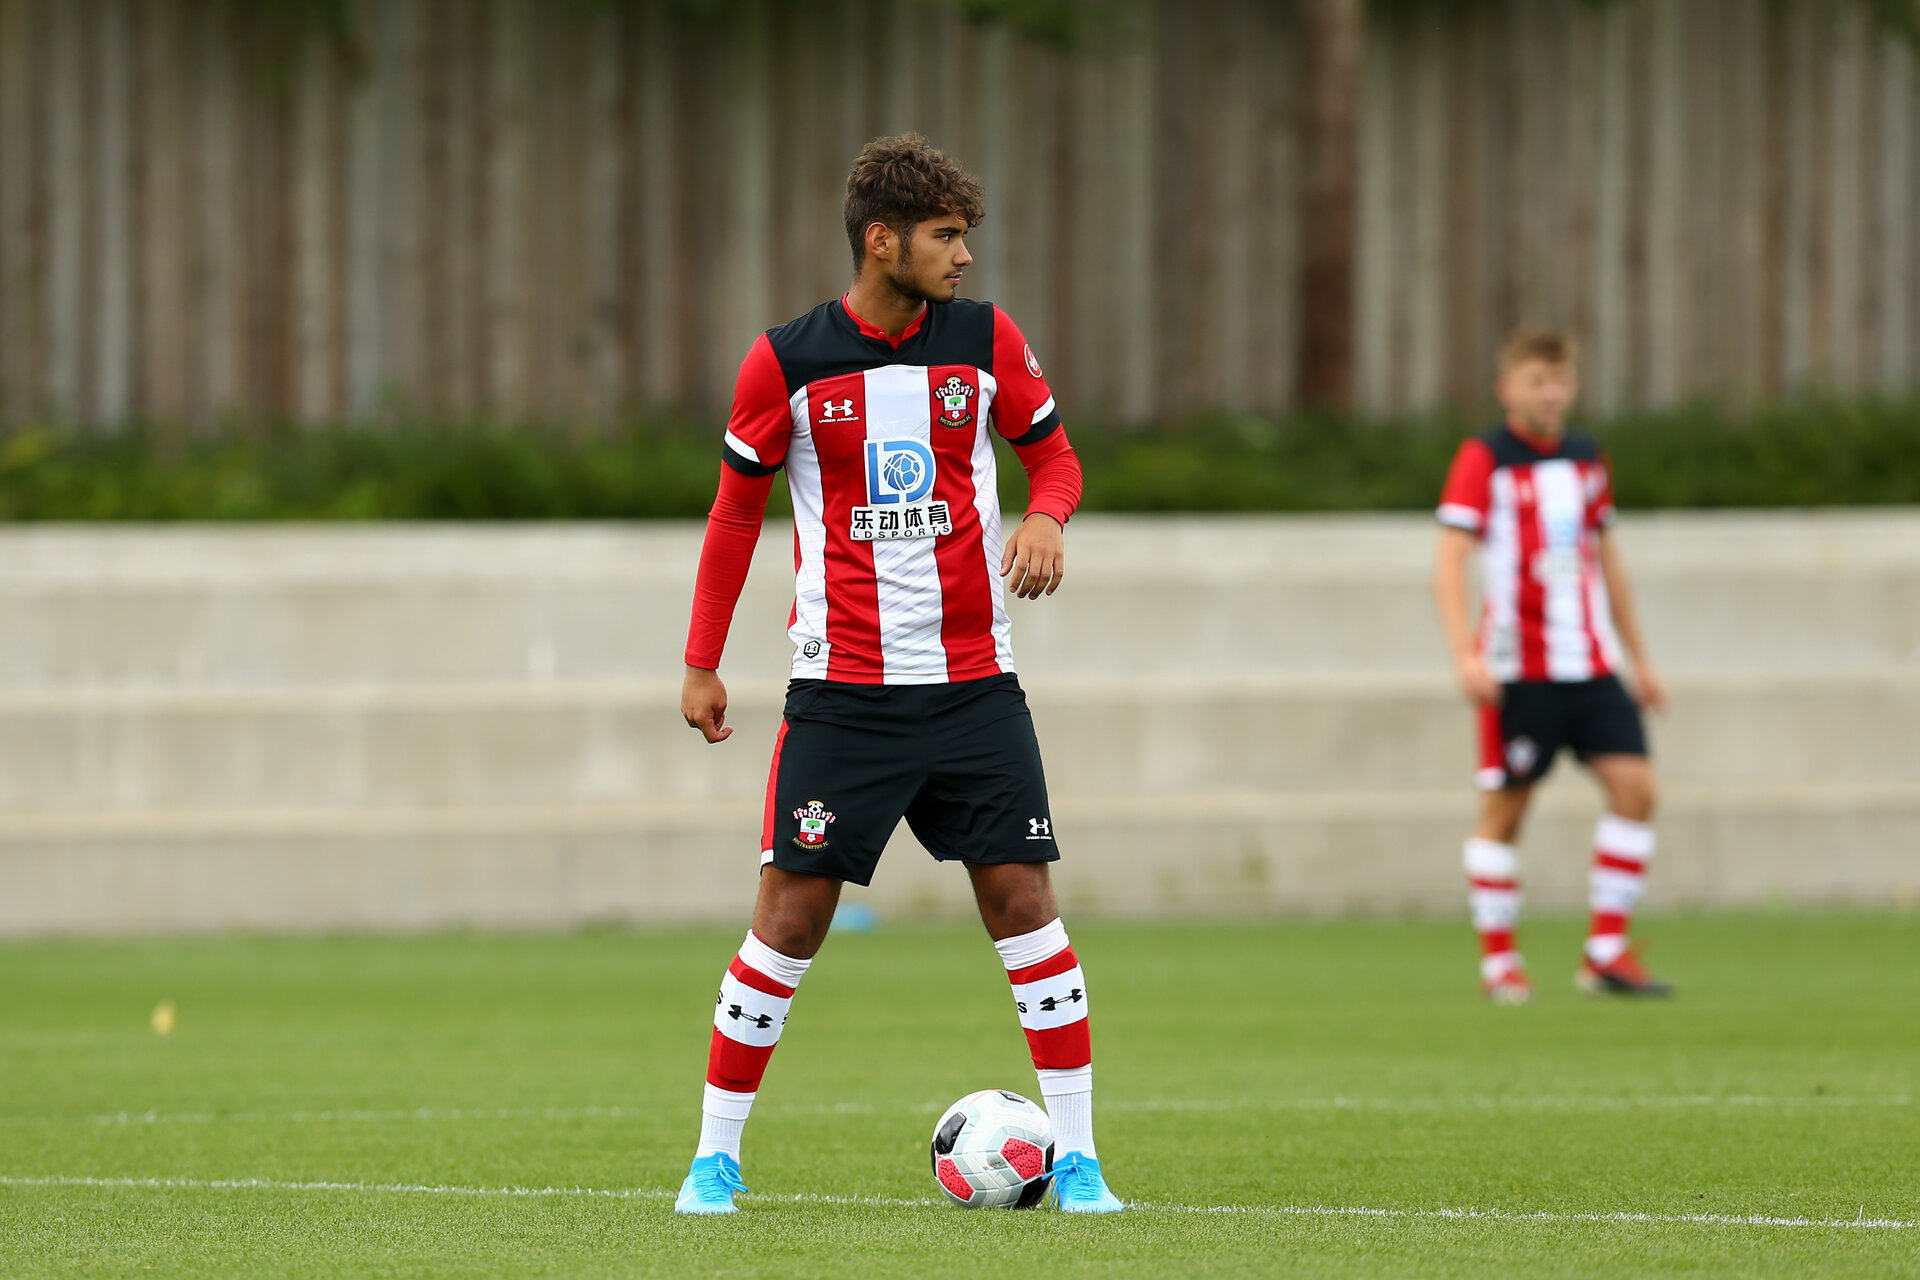 SOUTHAMPTON, ENGLAND - AUGUST 10: Benni Smails Braithwaite during an U18s game between Southampton FC and Aston Villa pictured at Staplewood Training Ground on August 10, 2019 in Southampton, England. (Photo by James Bridle - Southampton FC/Southampton FC via Getty Images)